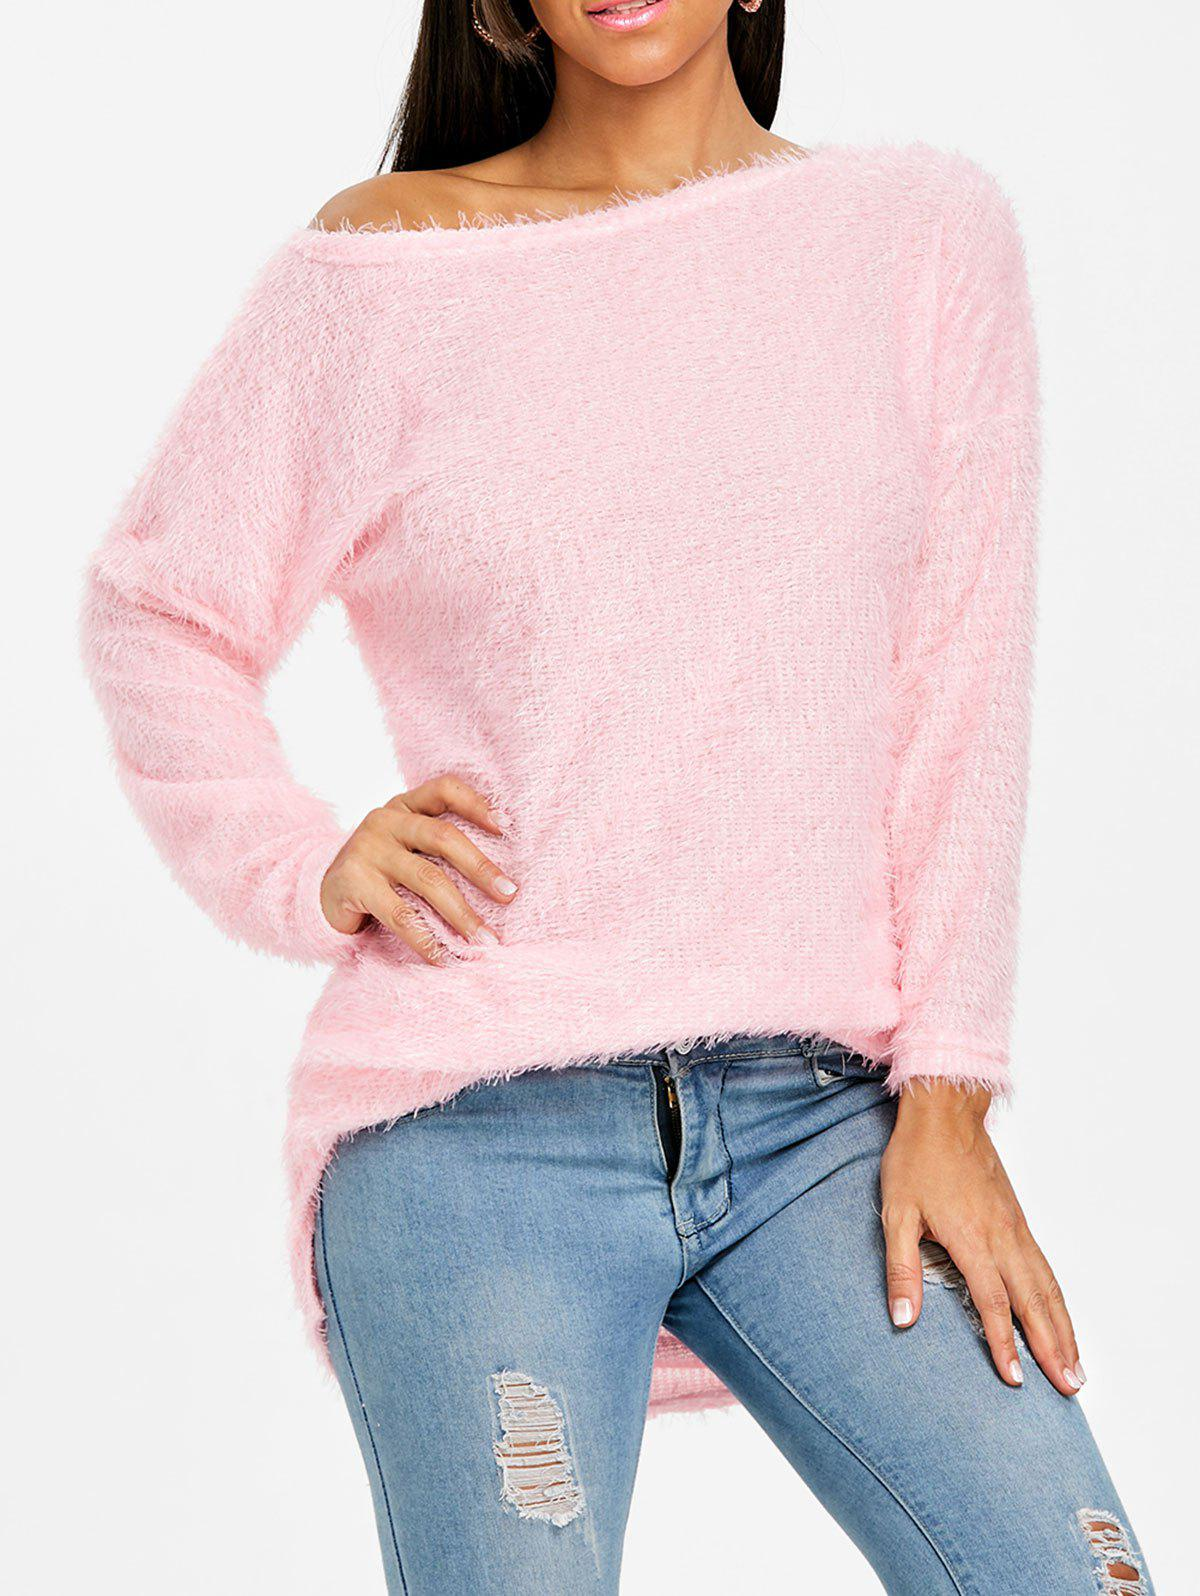 Fluffy Skew Neck Tunic Sweater - PINK M